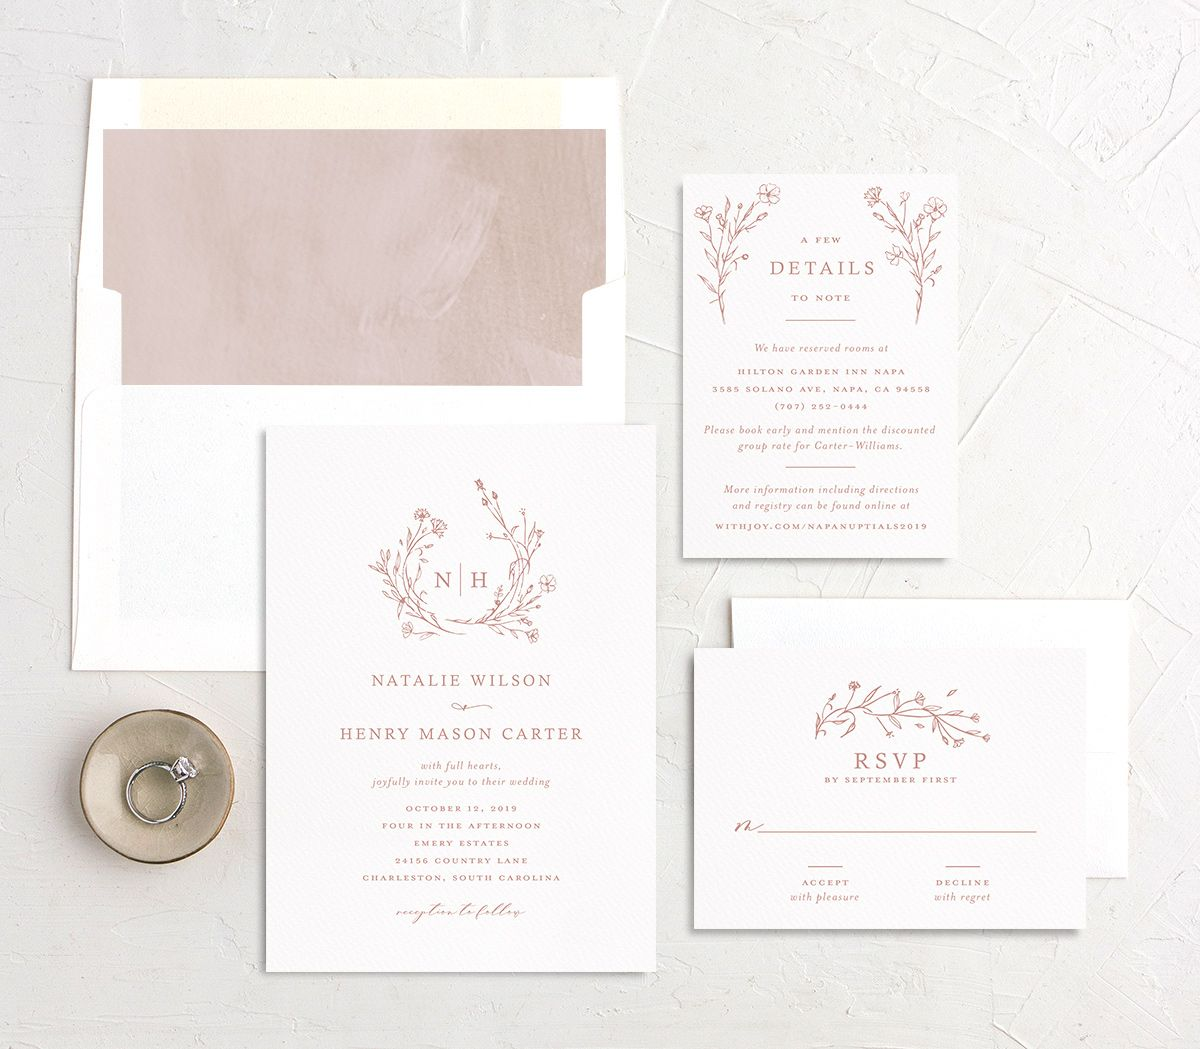 Natural Monogram wedding invite suite in pink